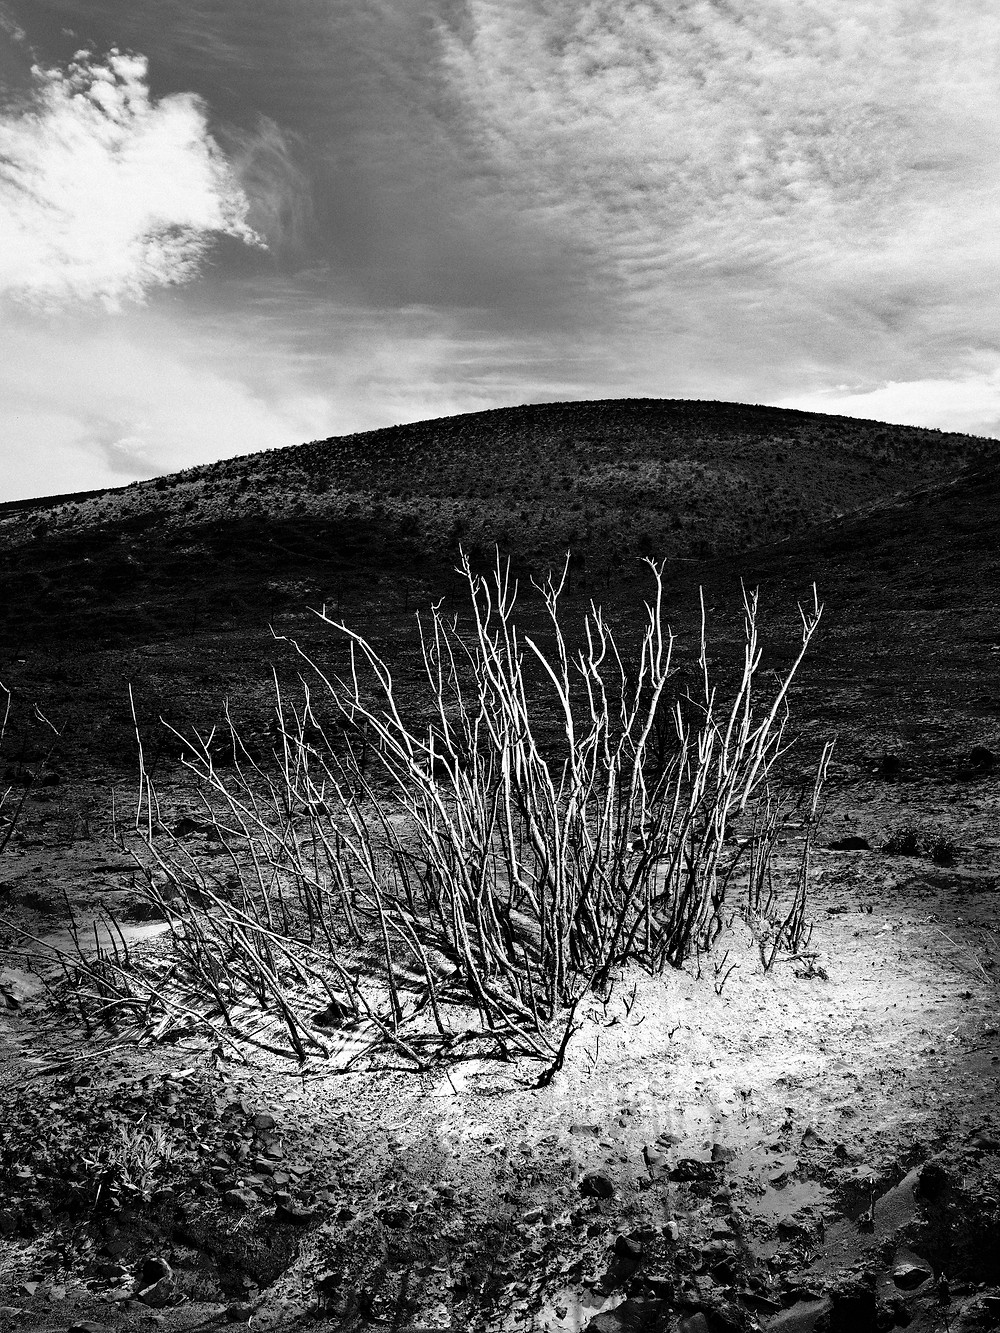 black and white photo of desert plan and hill in background